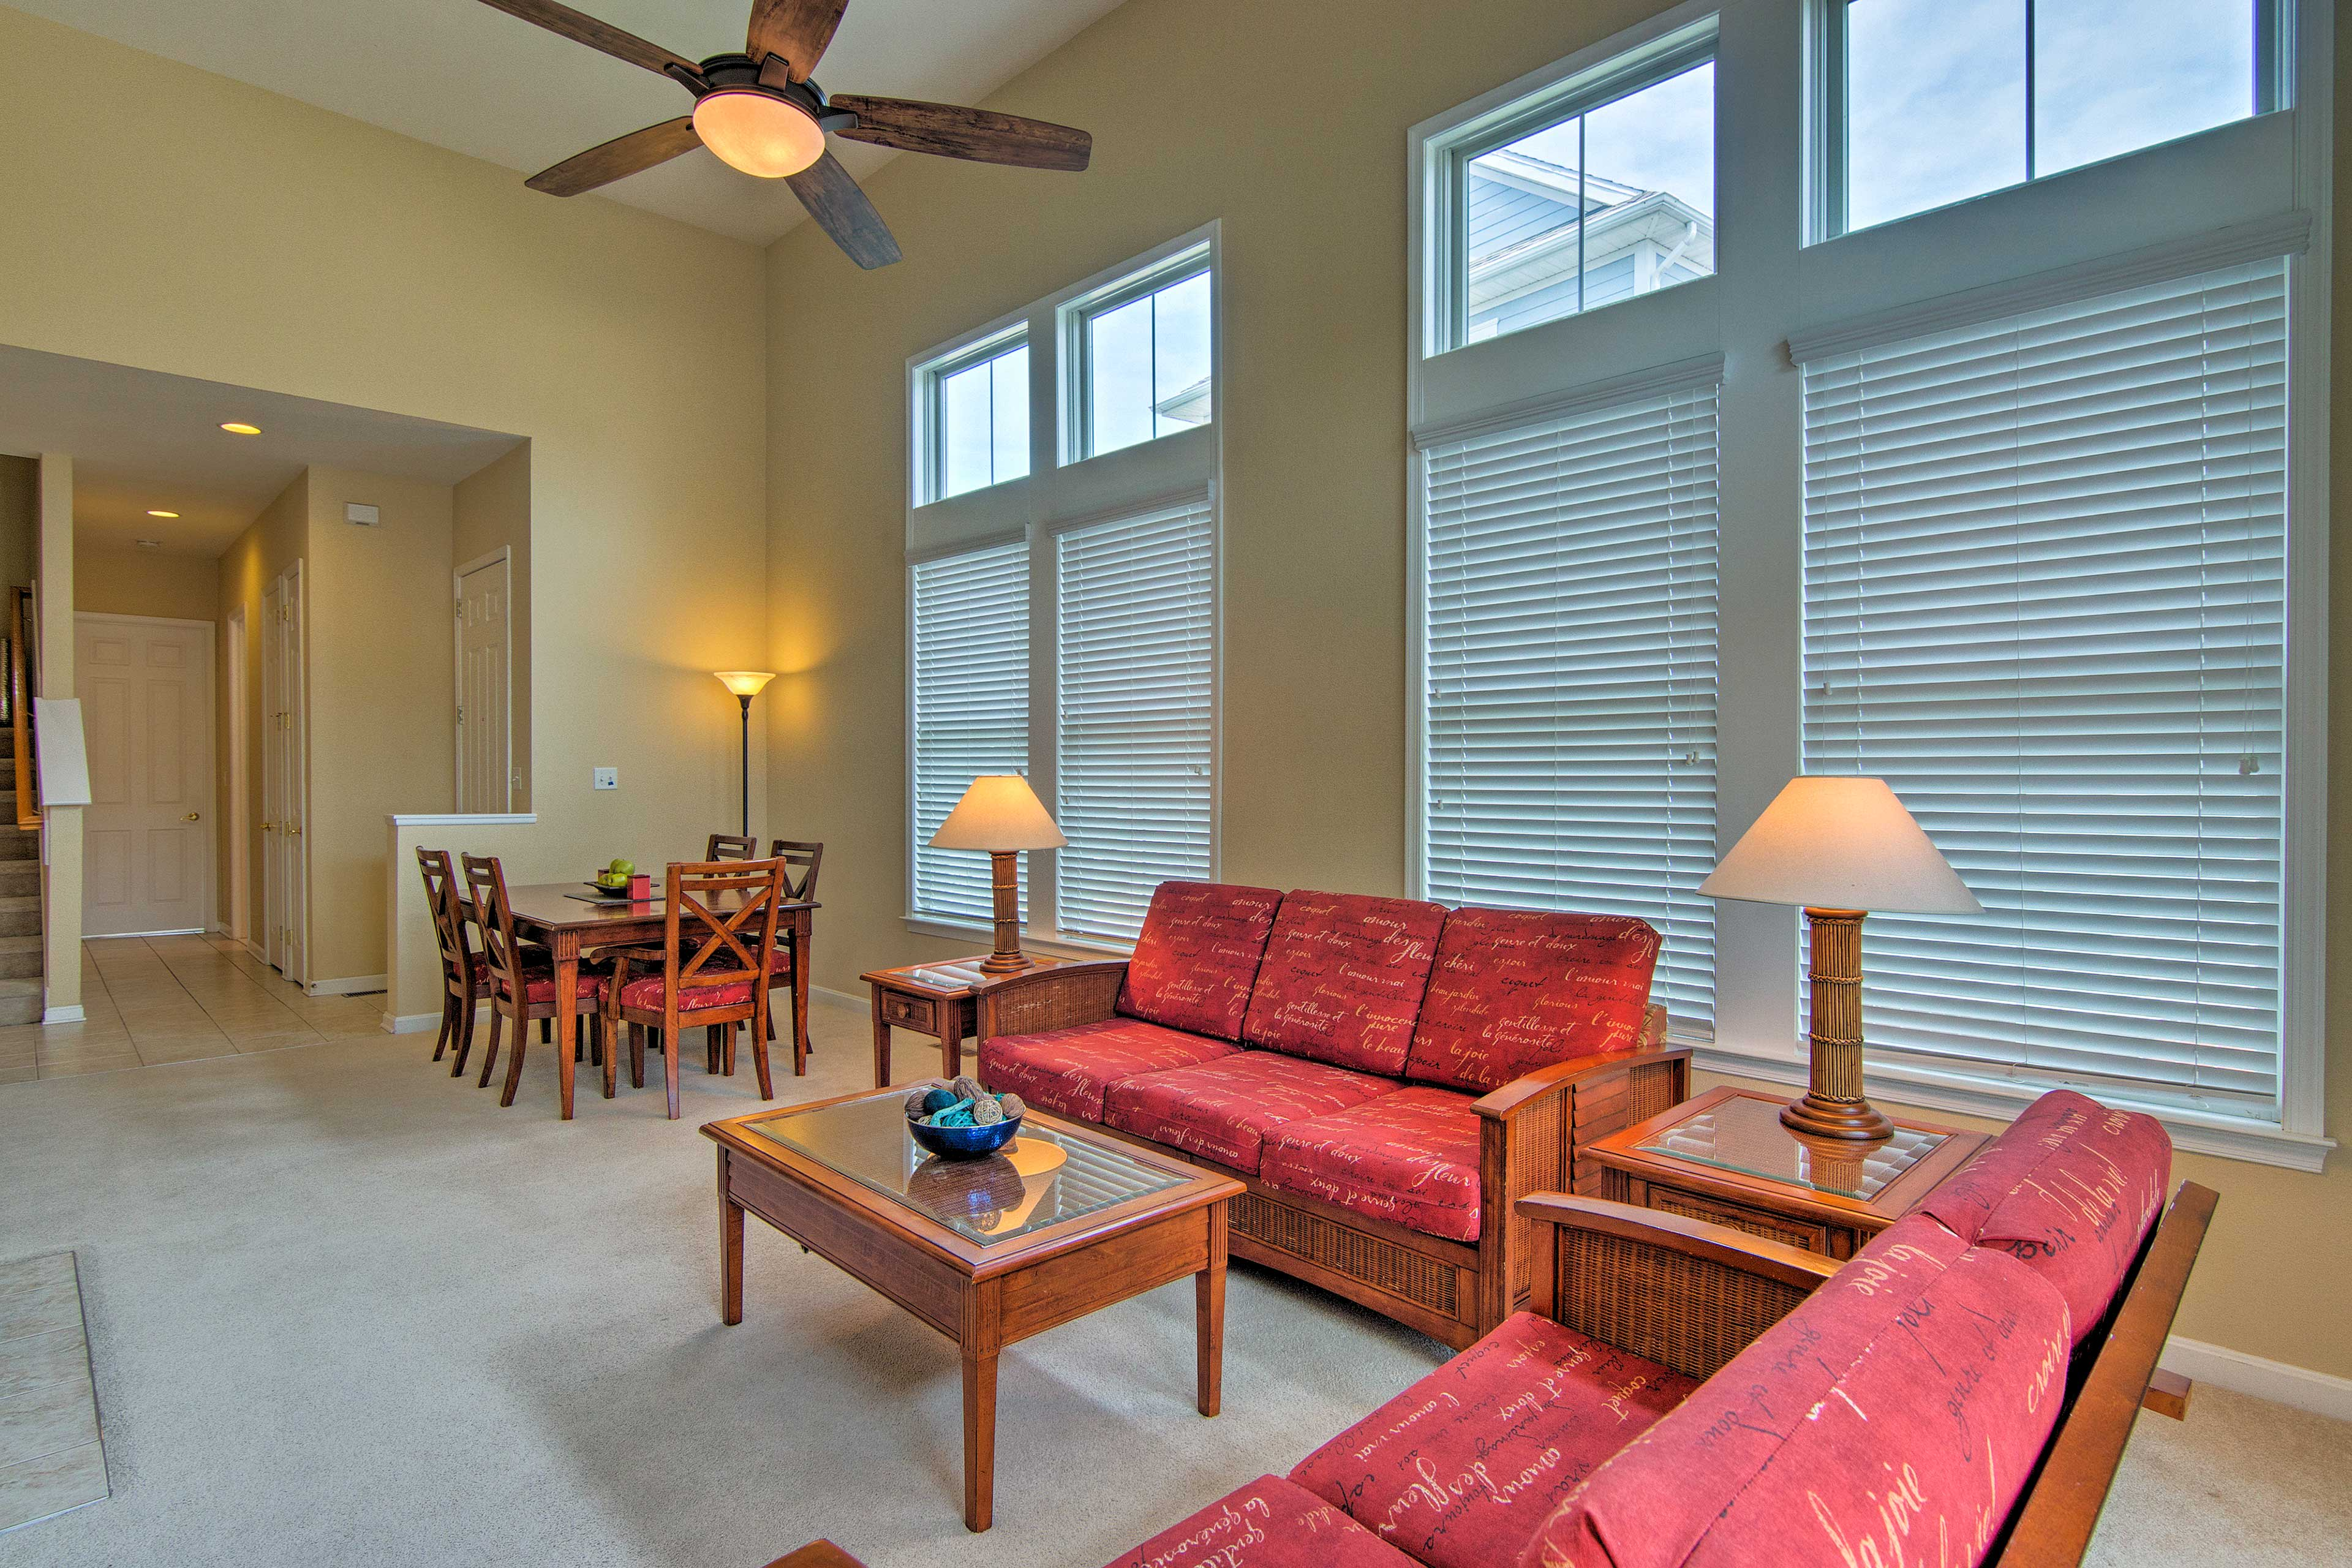 Picture windows and sliding glass doors let natural light illuminate the space.